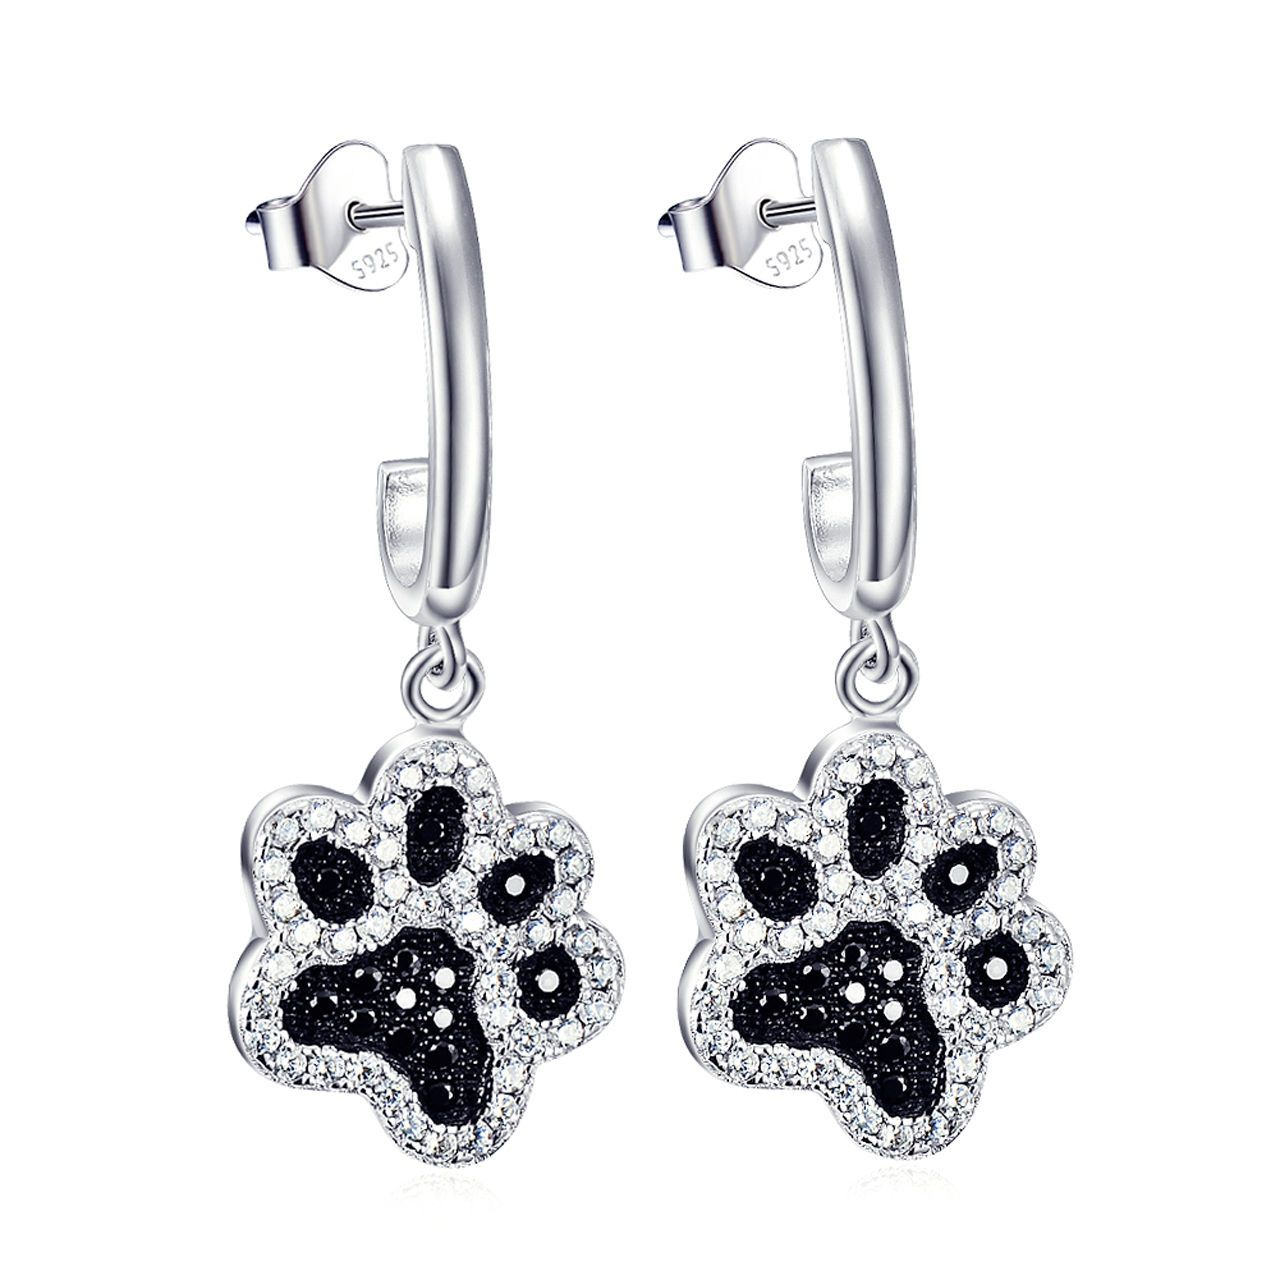 Details About Cute Puppy Pet Dog Cat Paw Print Ear Stud